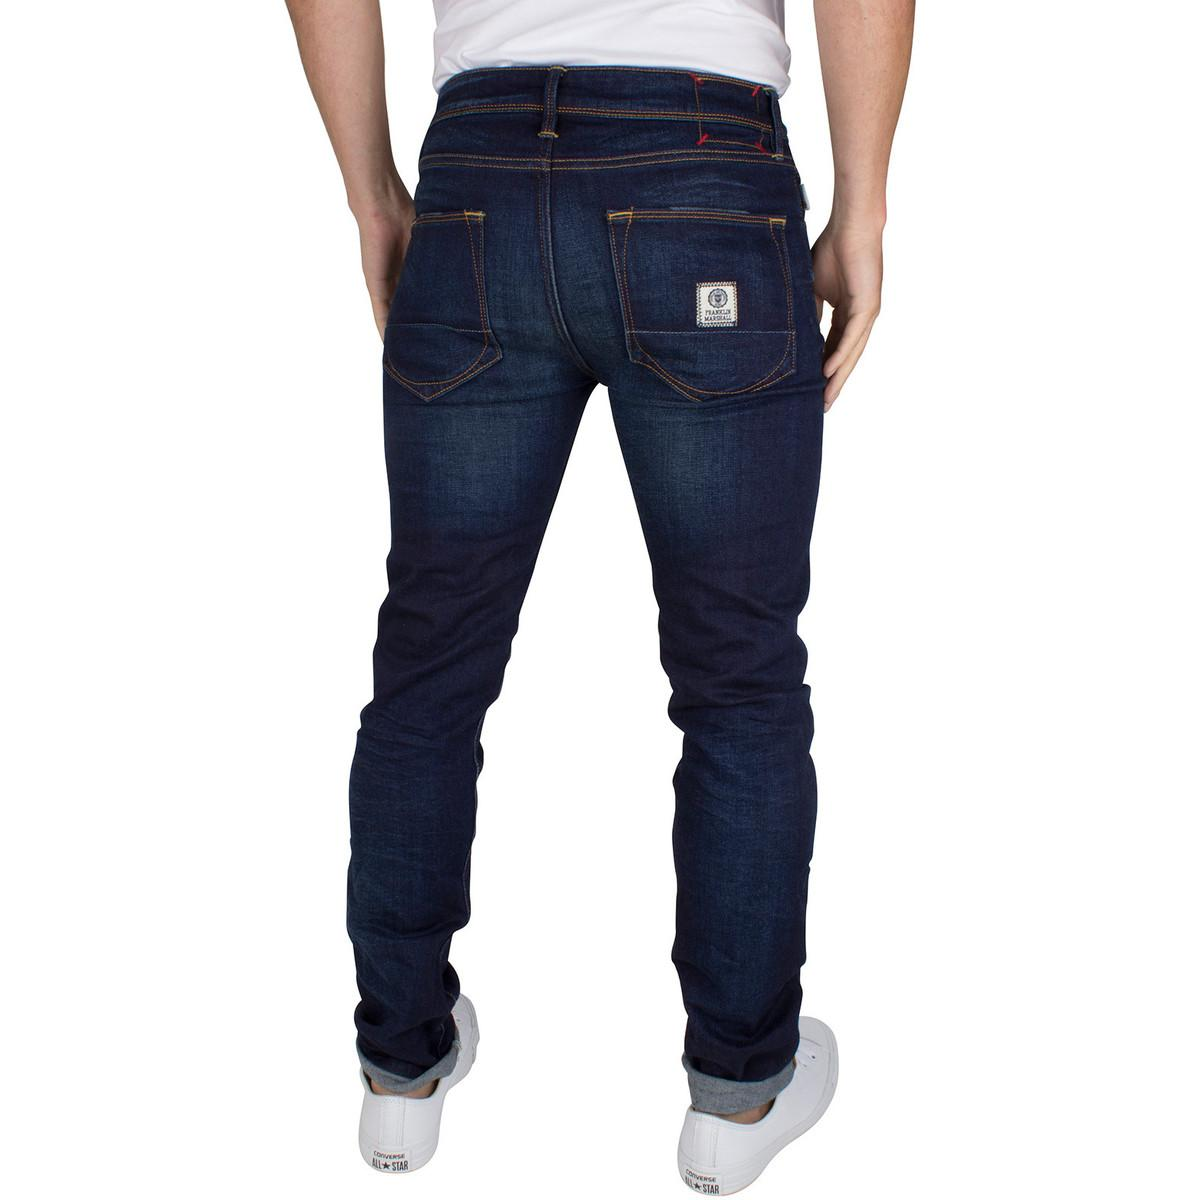 Franklin & Marshall Denim Men's Skinny Fit Seattle Jeans, Blue Men's Skinny Jeans In Blue for Men